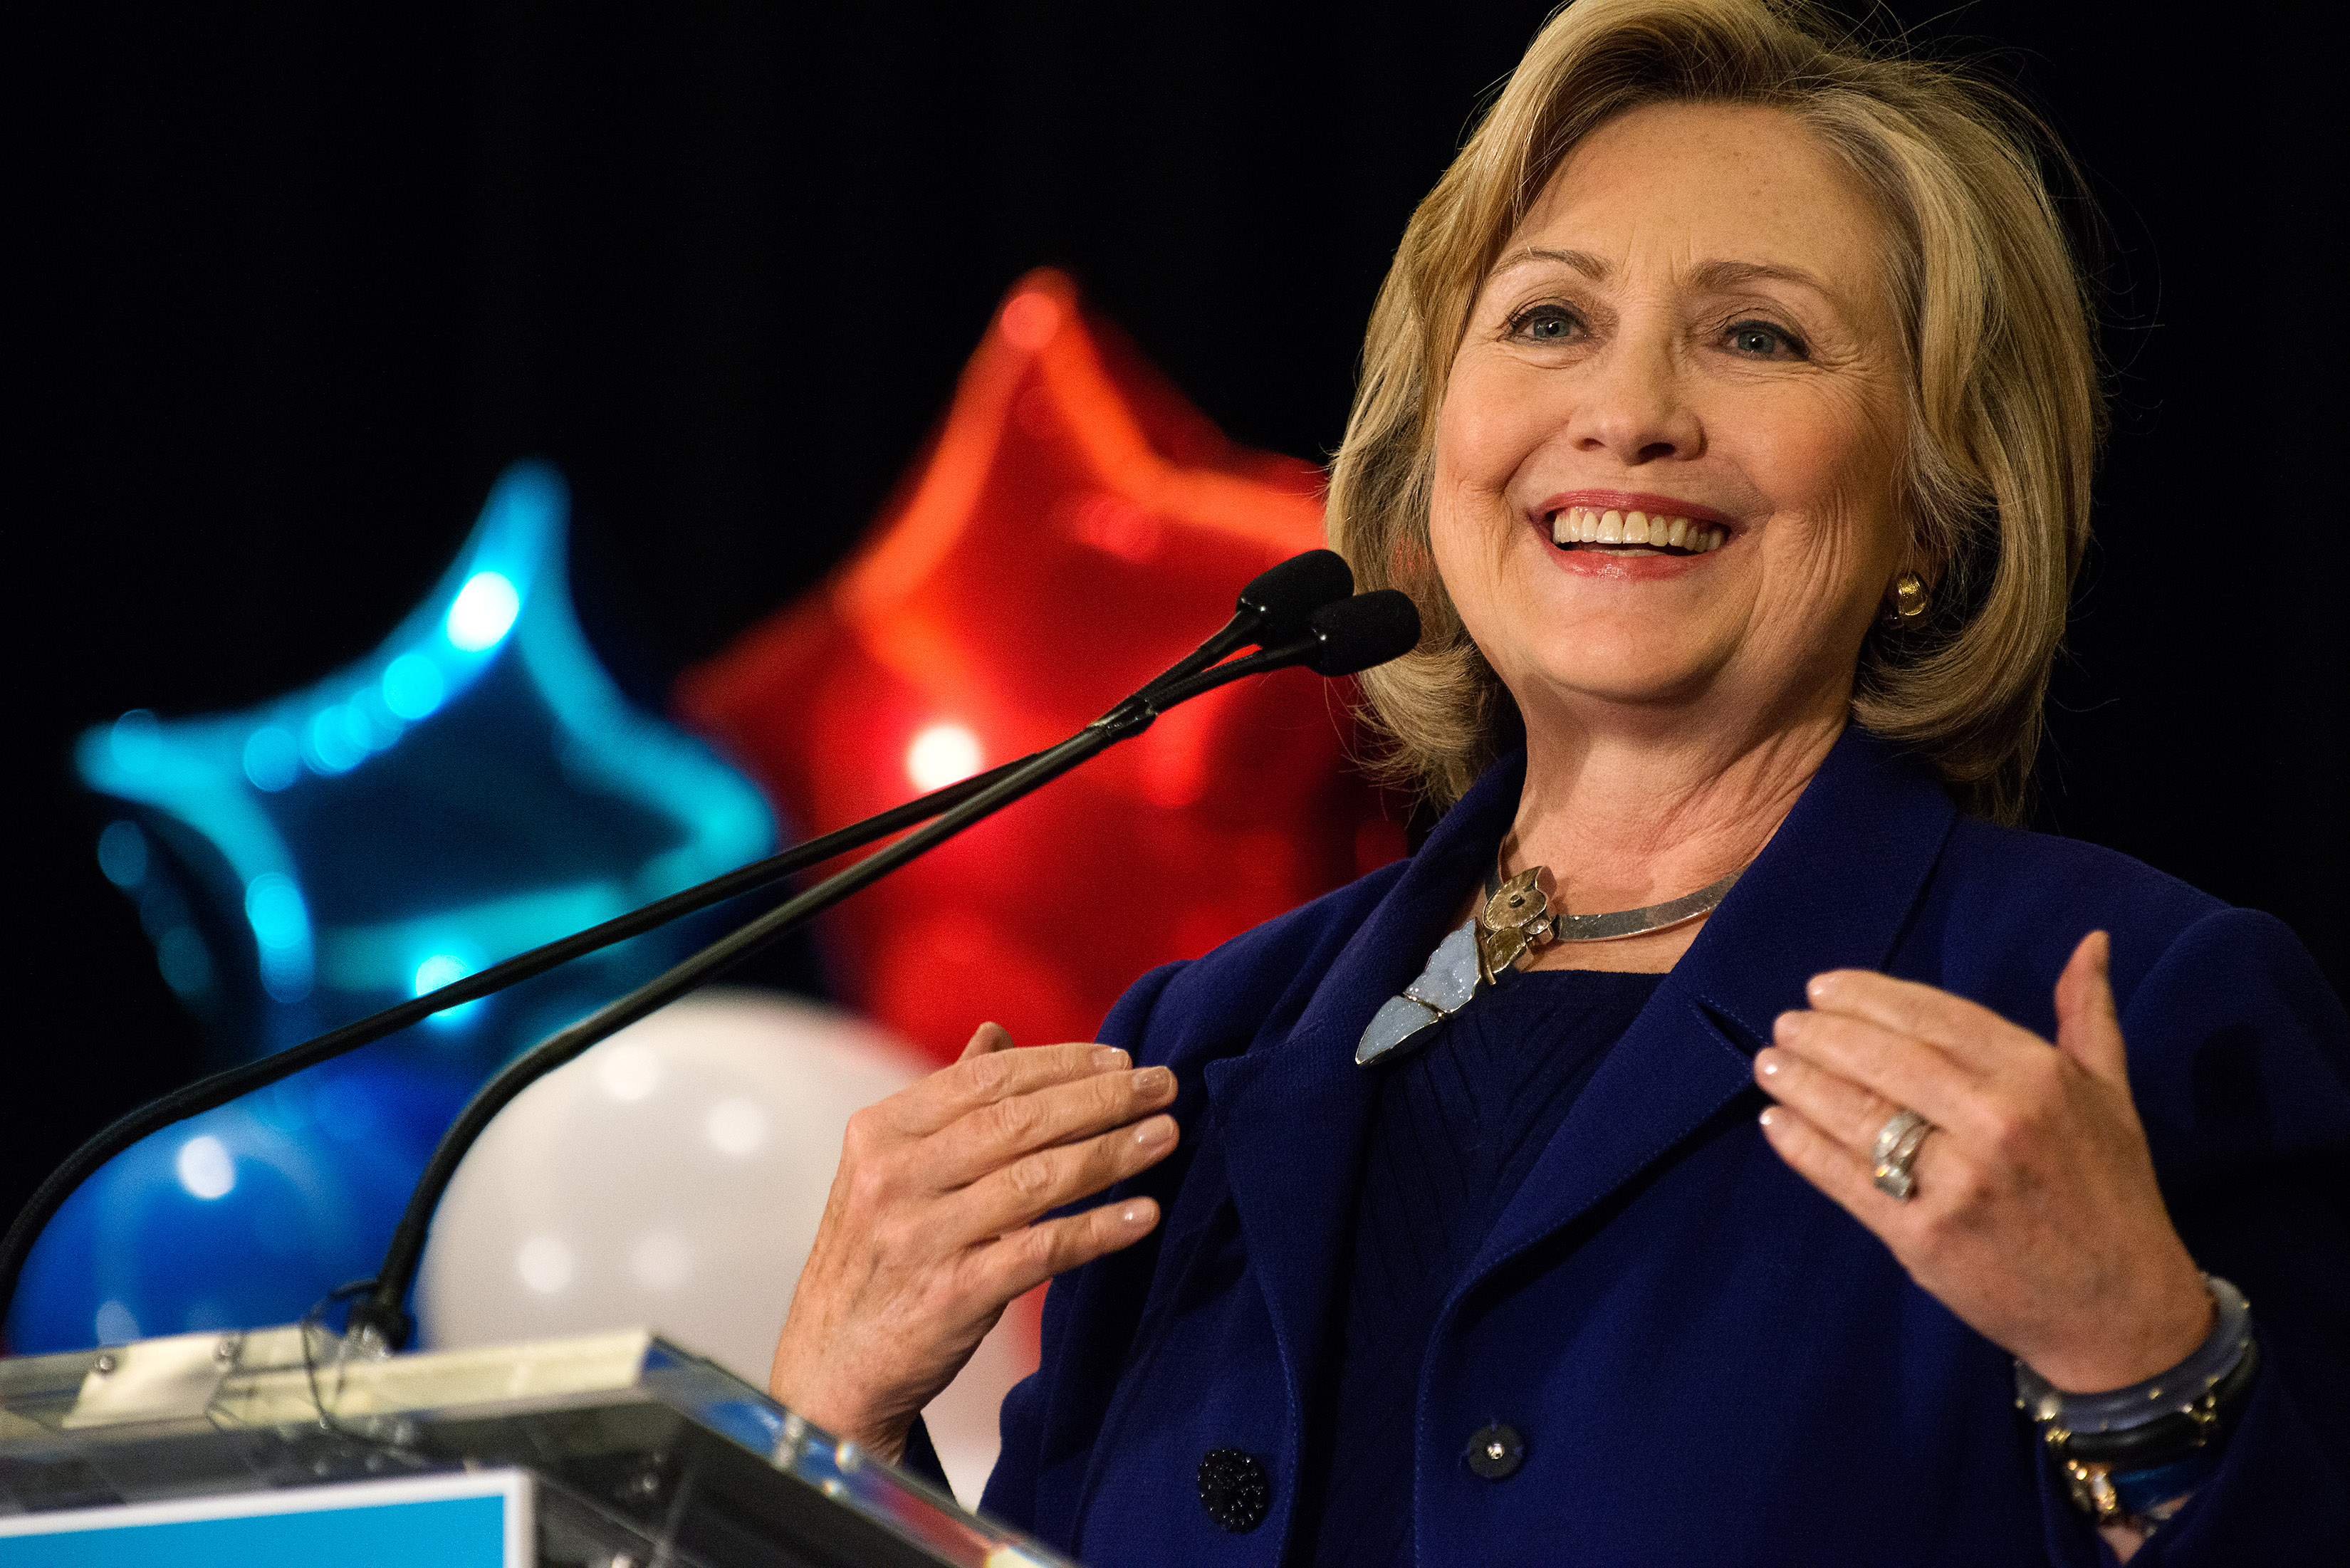 "NEW YORK, NY - OCTOBER 23: Former U.S. Secretary of State and U.S. Sen. Hillary Rodham Clinton speaks during a ""Women for Cuomo"" campaign event on October 23, 2014 at the Grand Hyatt Hotel in New York, NY. Cuomo was joined by Clinton who, citing his record on women's rights, endorsed him in the upcoming gubernatorial election on November 4, 2014. U.S. Rep. Kathy Hochul, the Democratic nominee for New York Lt. Gov., also spoke at the event. (Photo by Bryan Thomas/Getty Images)"